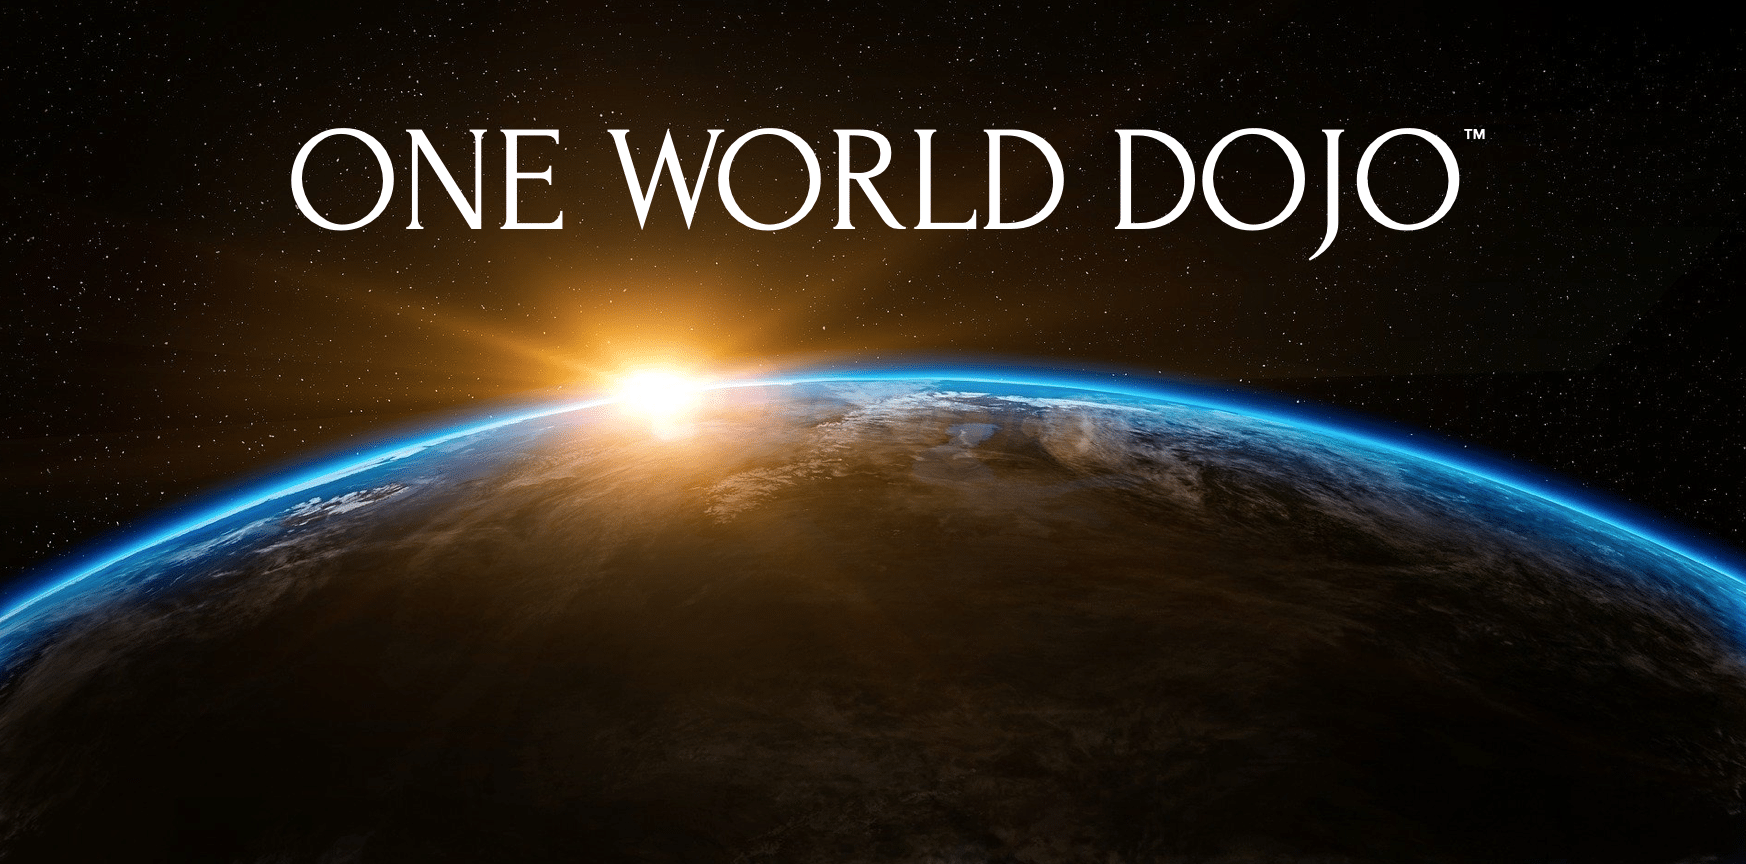 One World Dojo